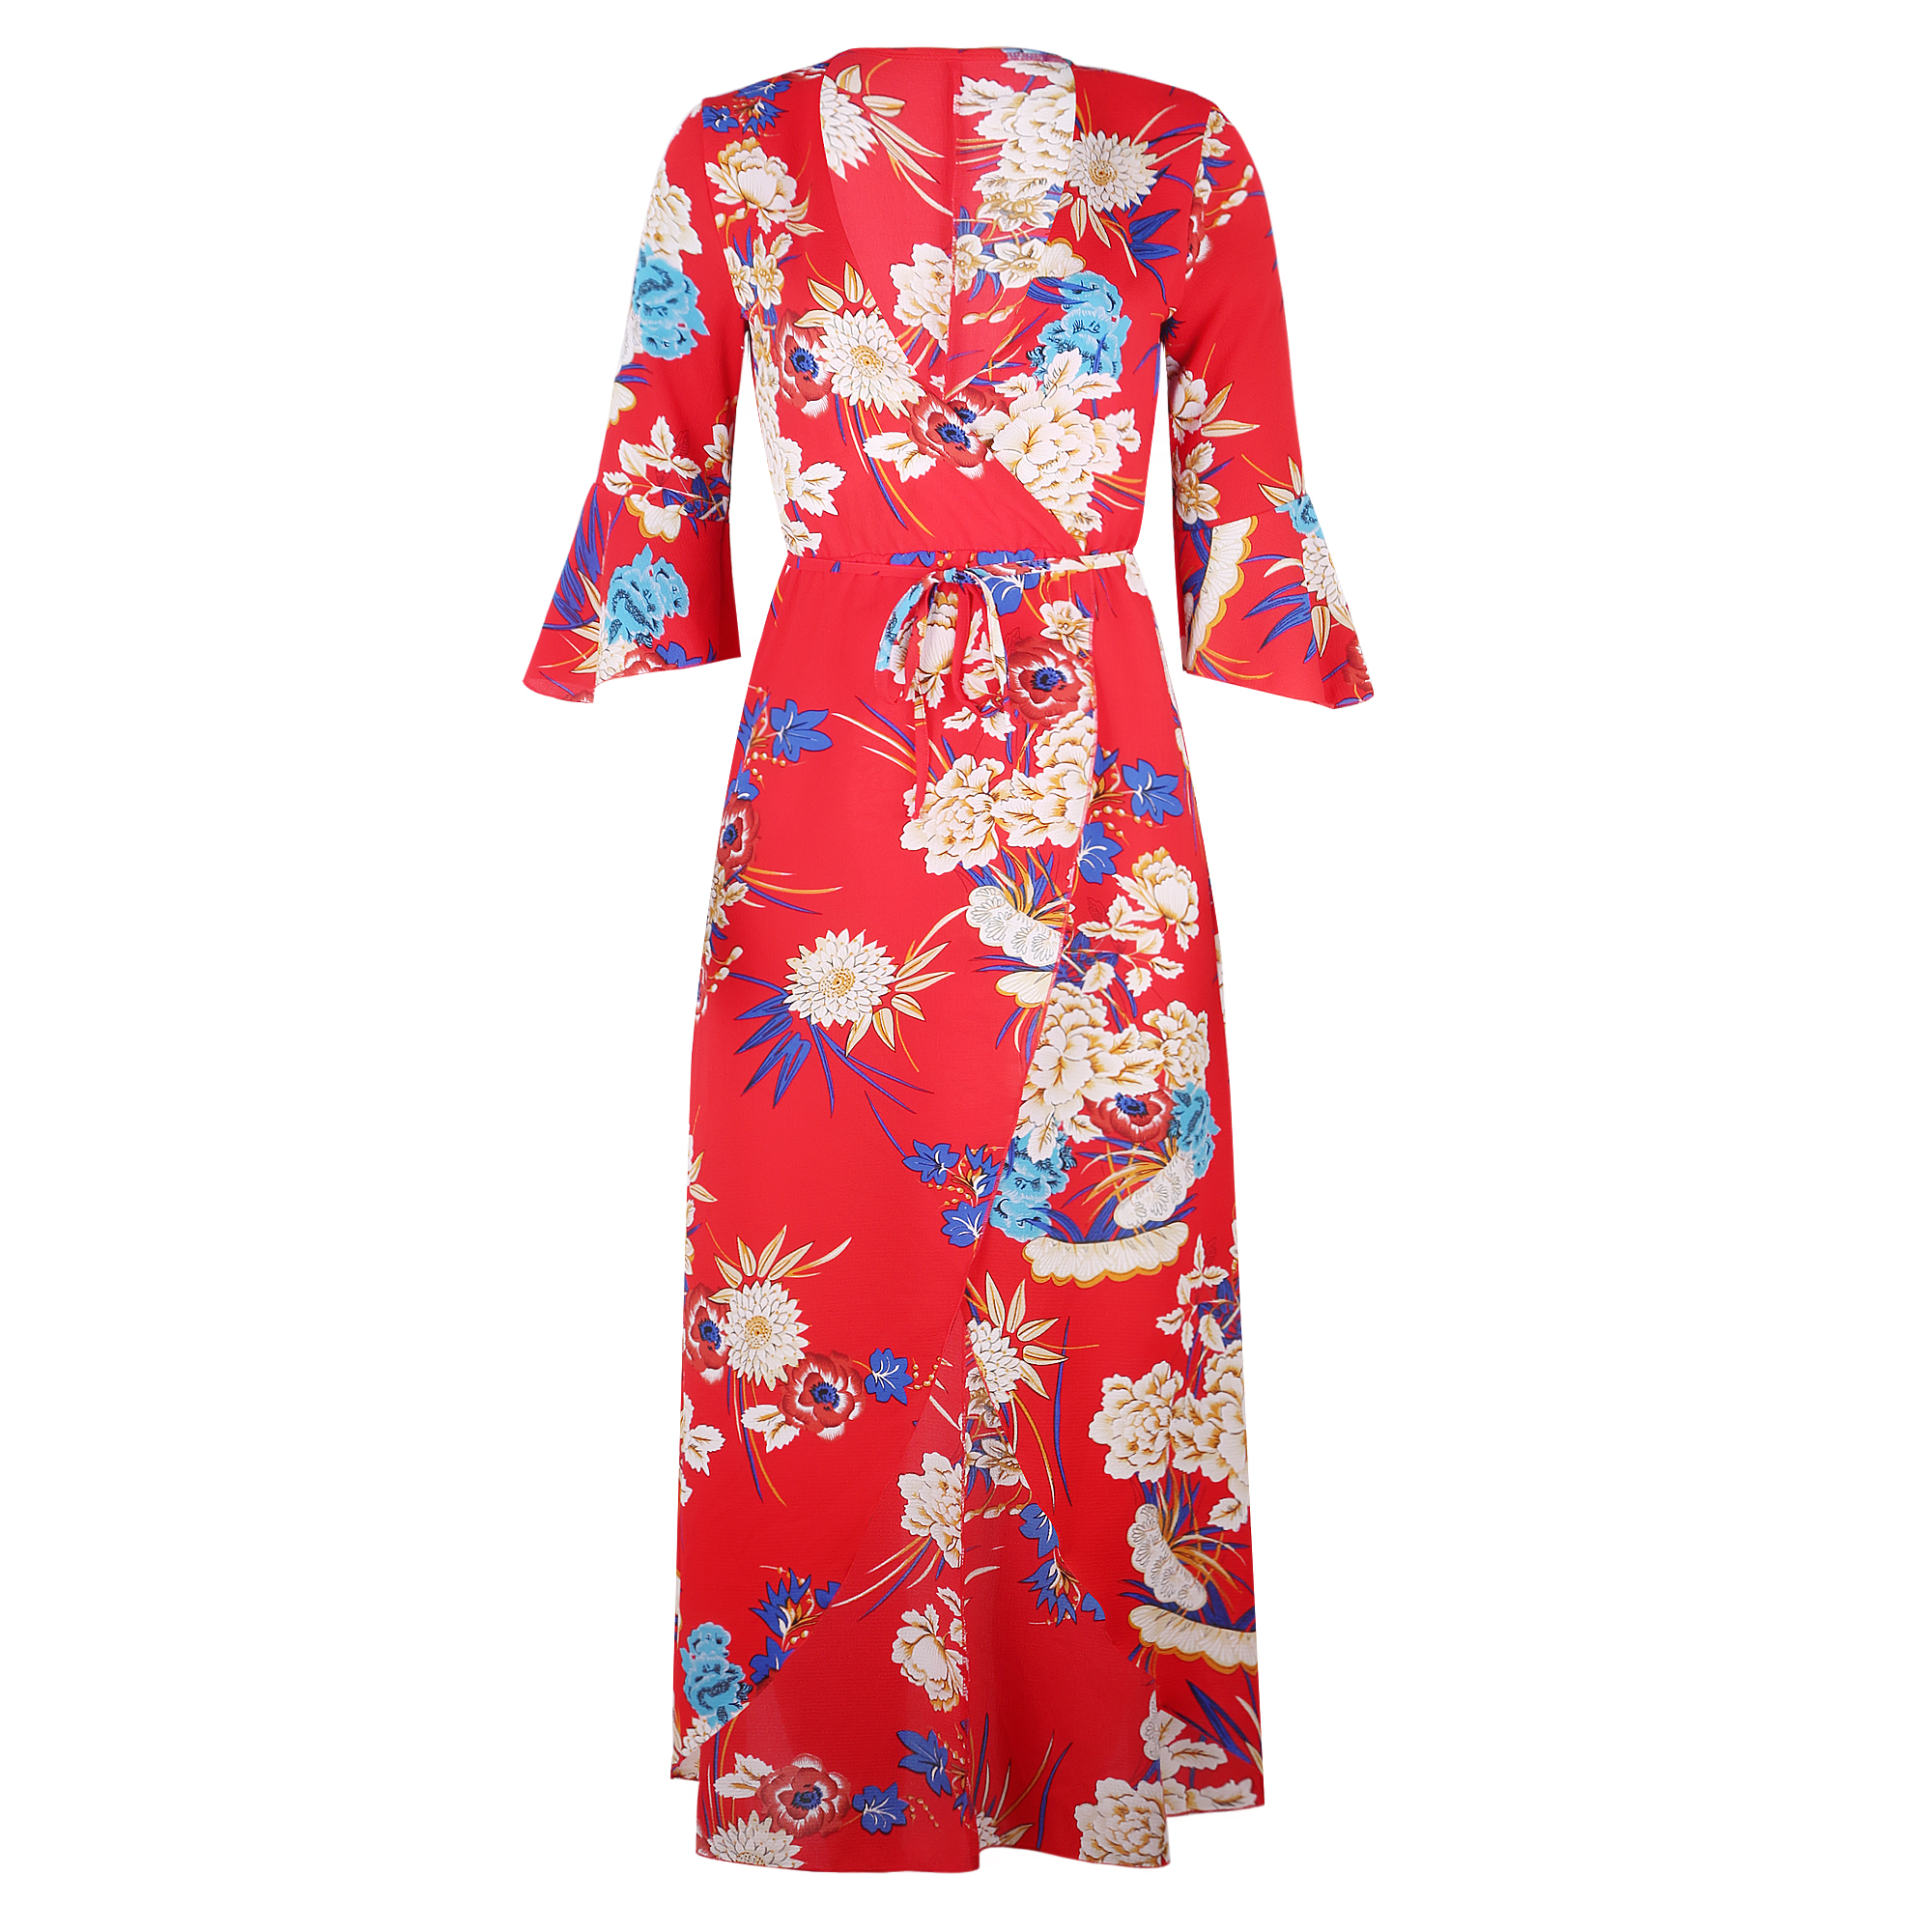 Women's Summer beach Floral Printed low cut V Neck Maxi Casual chiffon Dress